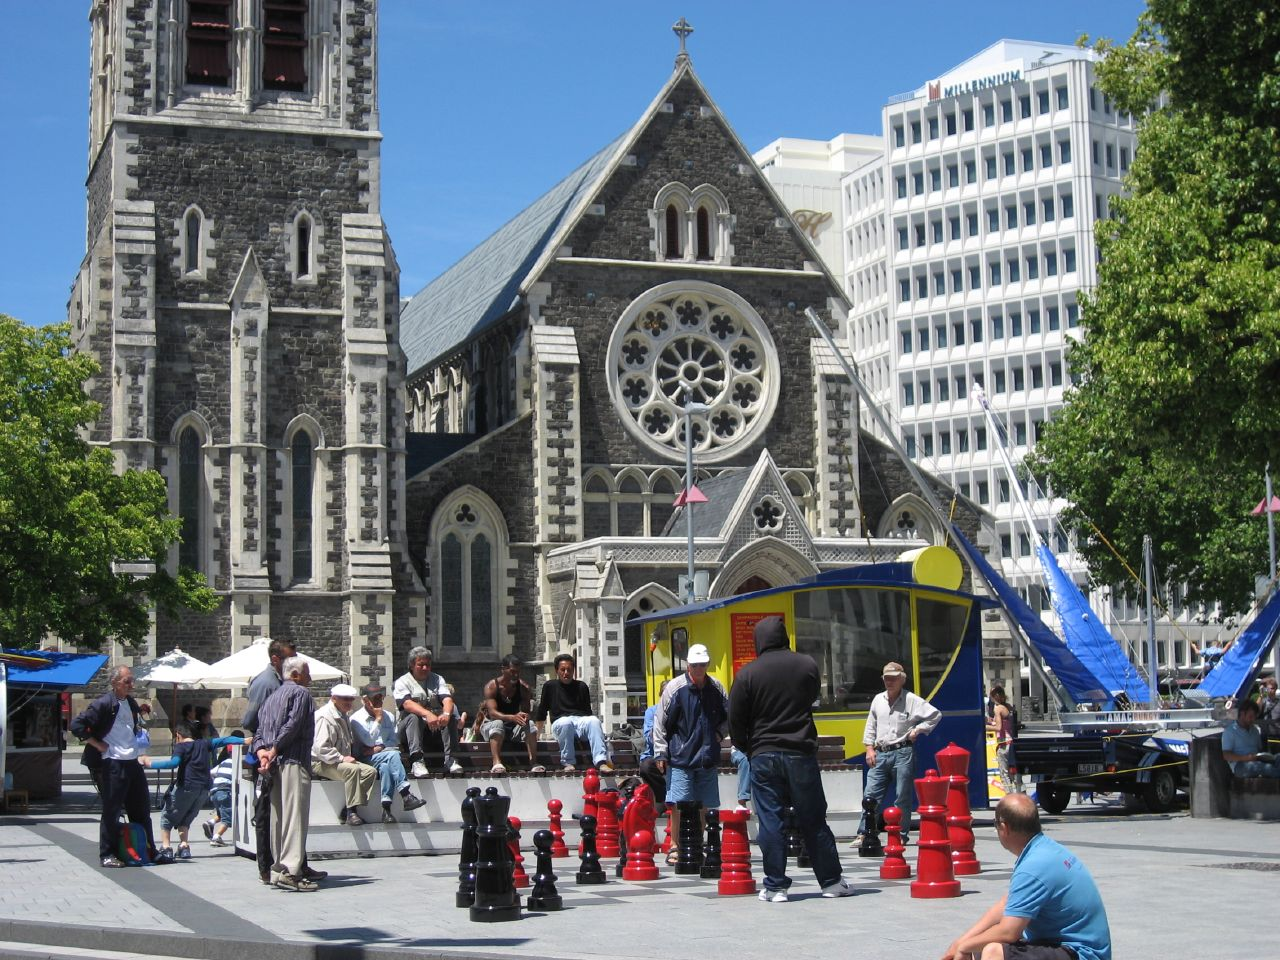 Playing chess in Cathedral Square - Christchurch, New Zealand